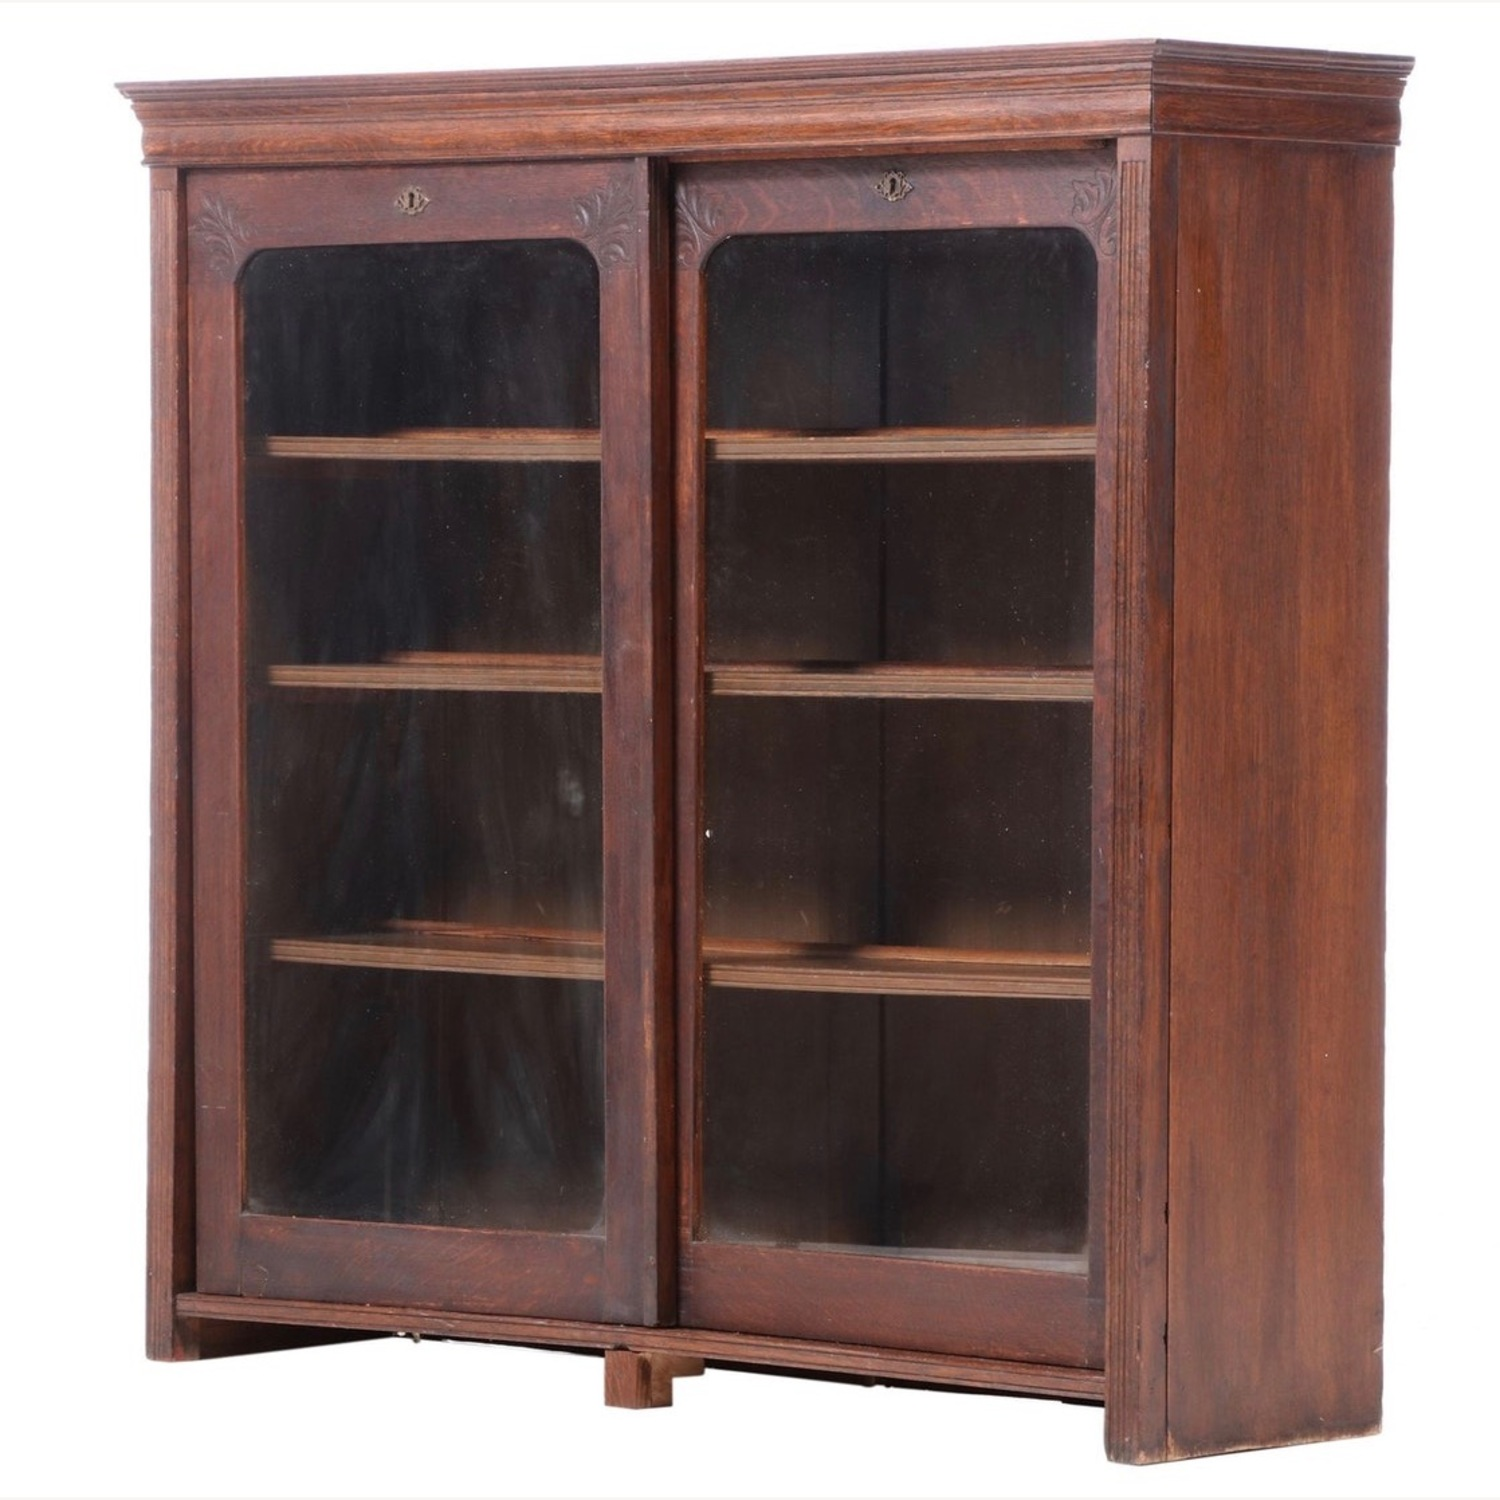 Oak Bookcase Cabinet, Early 20th Century - image-1